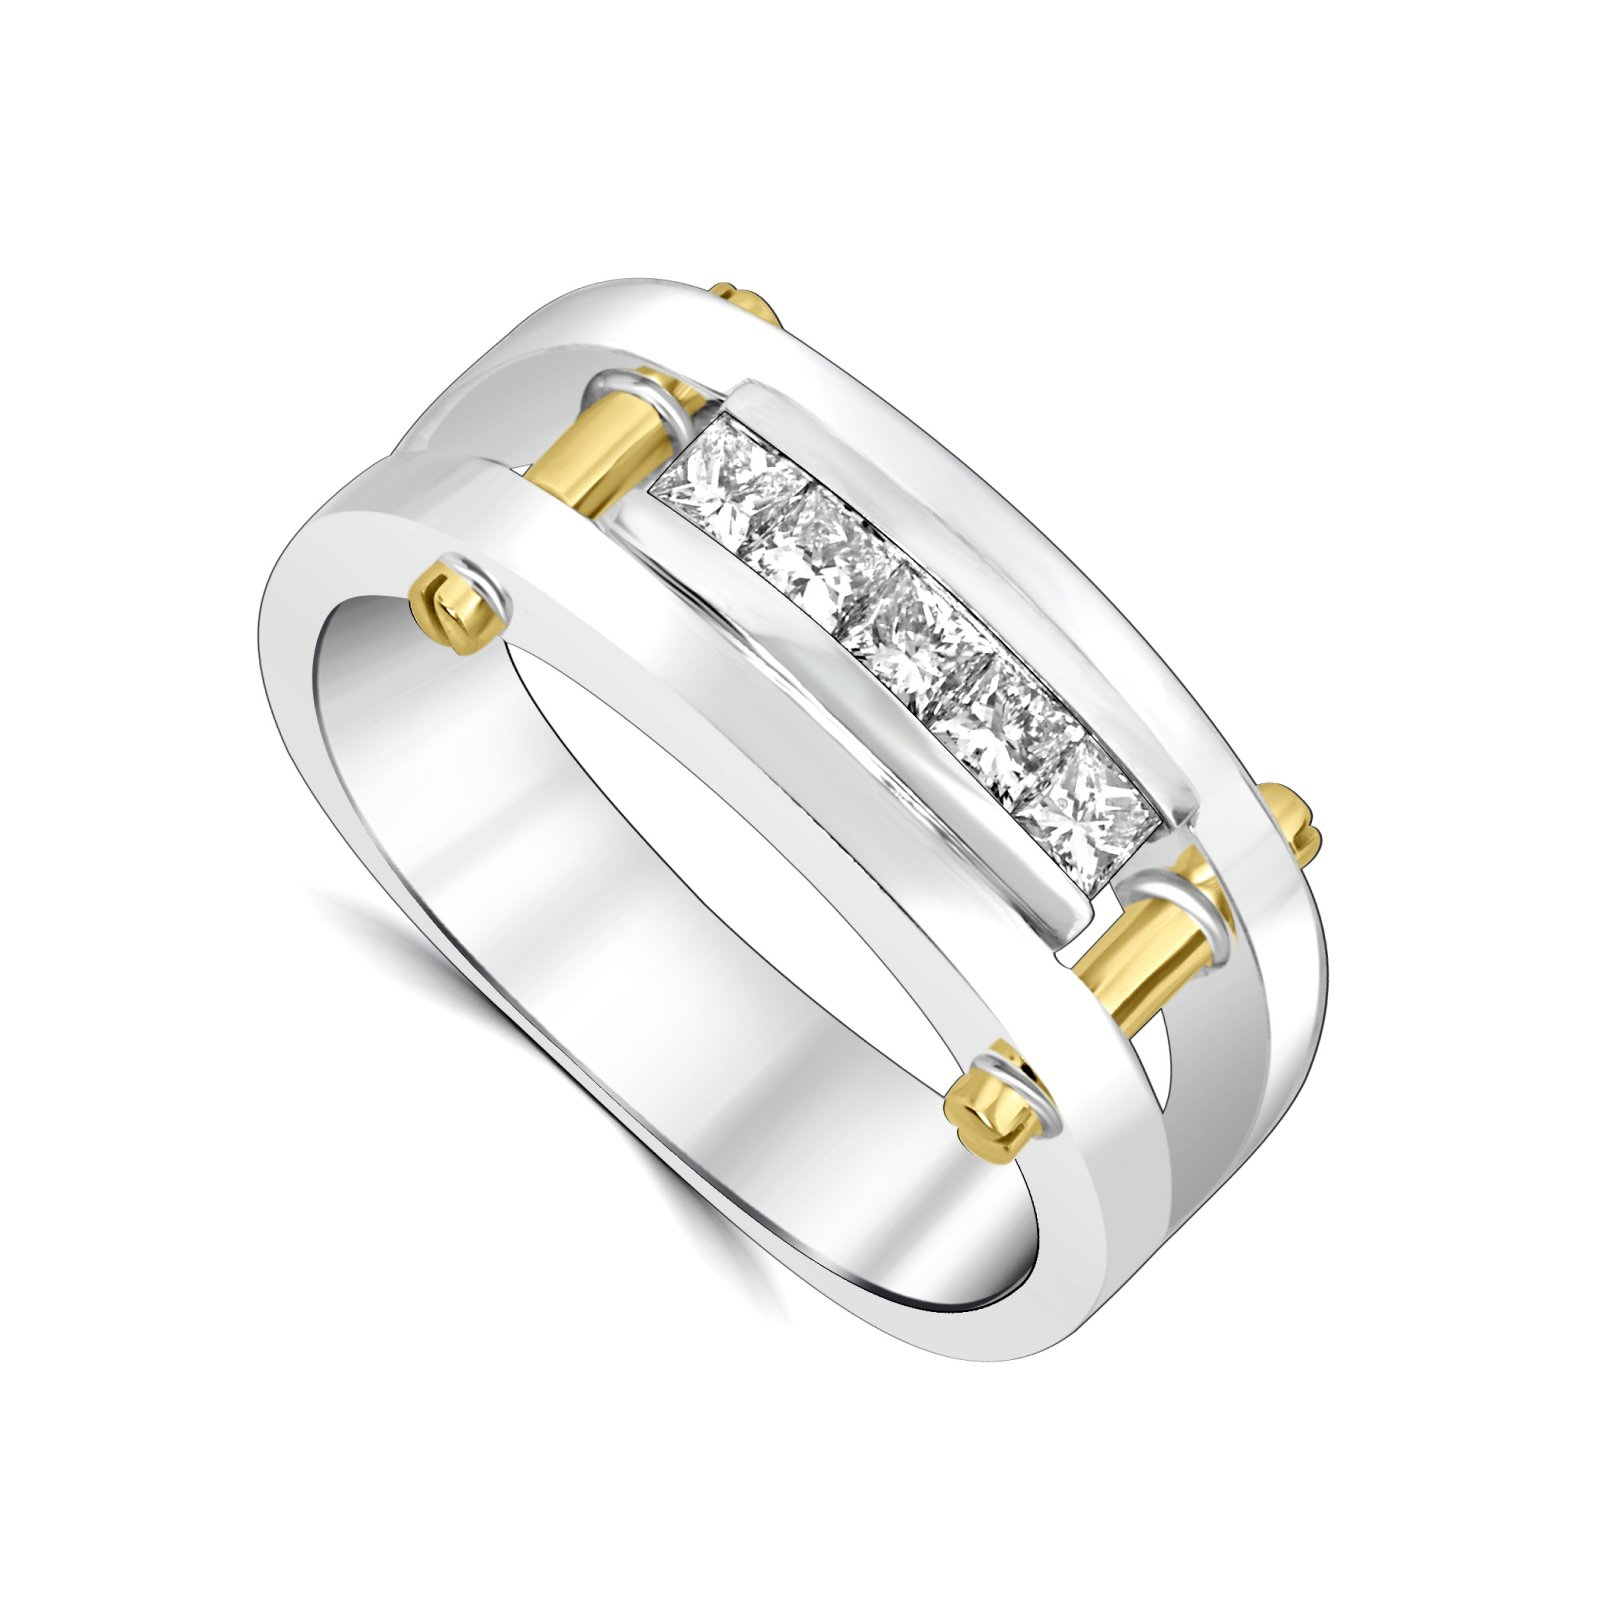 Men's 0.67 Total Carat Weight Custom Diamond Ring Set in 14 Karat White  Gold with Yellow Gold Accents